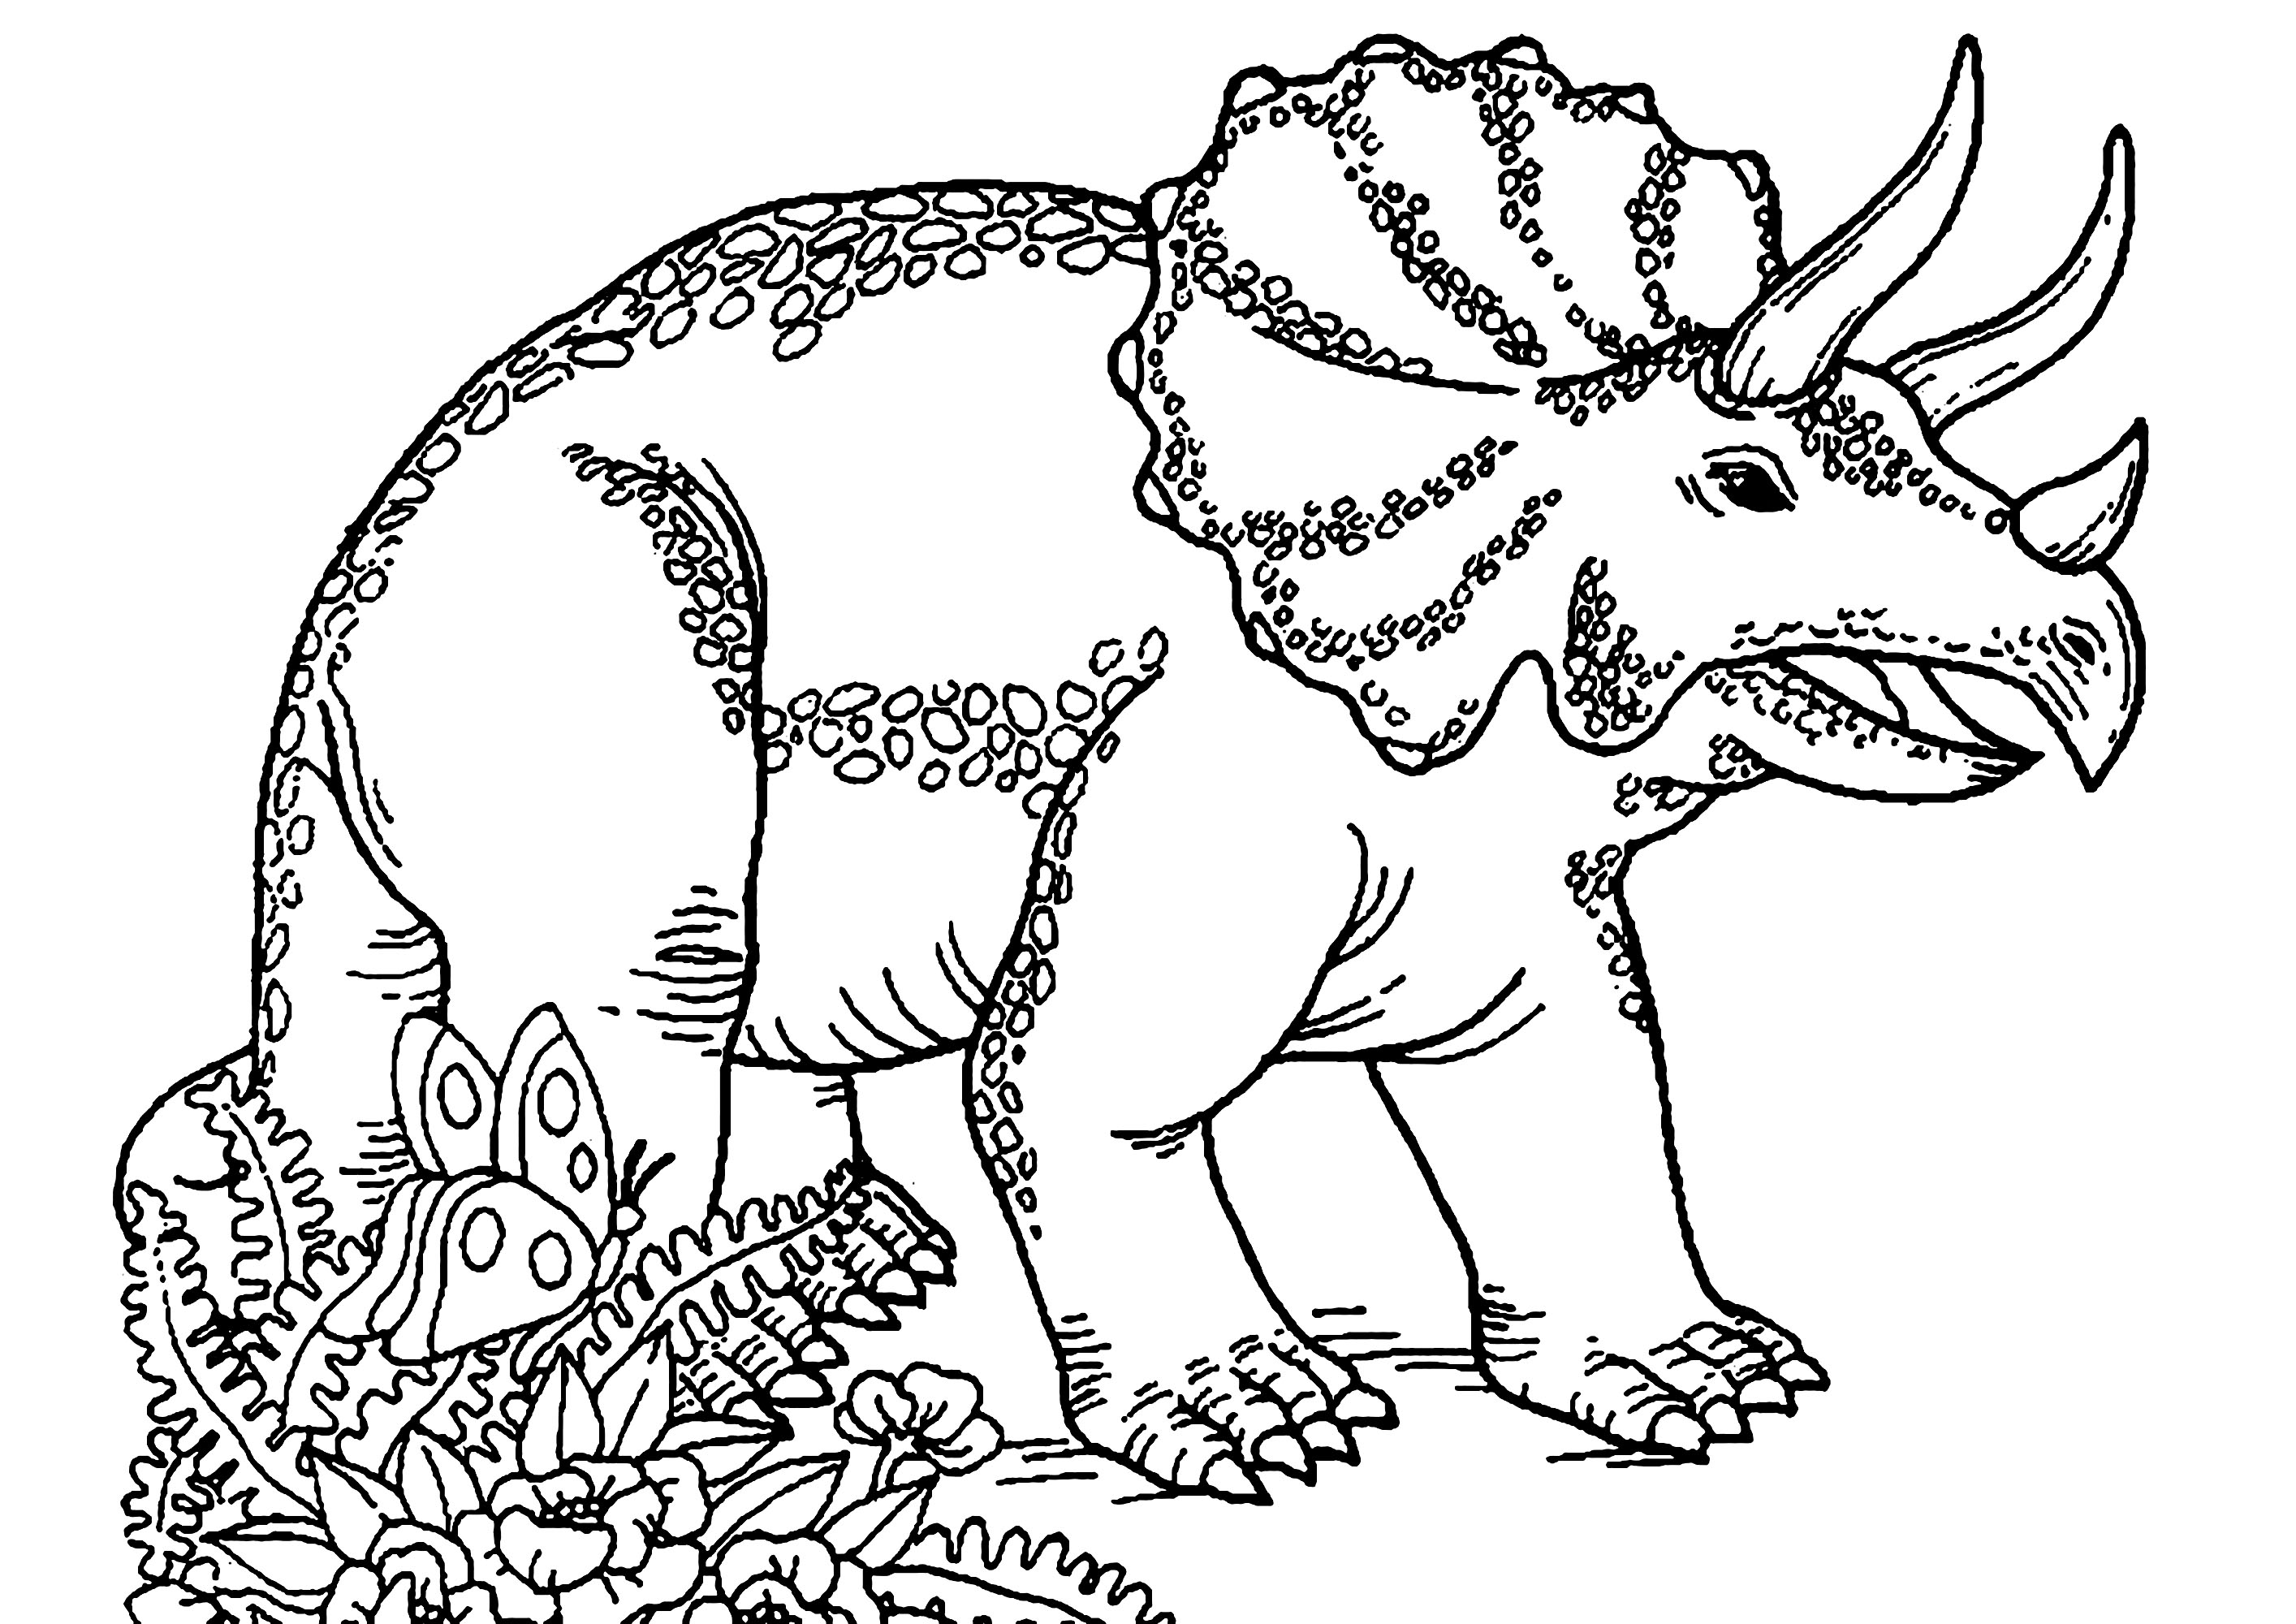 dino coloring pages dinosaur coloring pages to download and print for free coloring pages dino